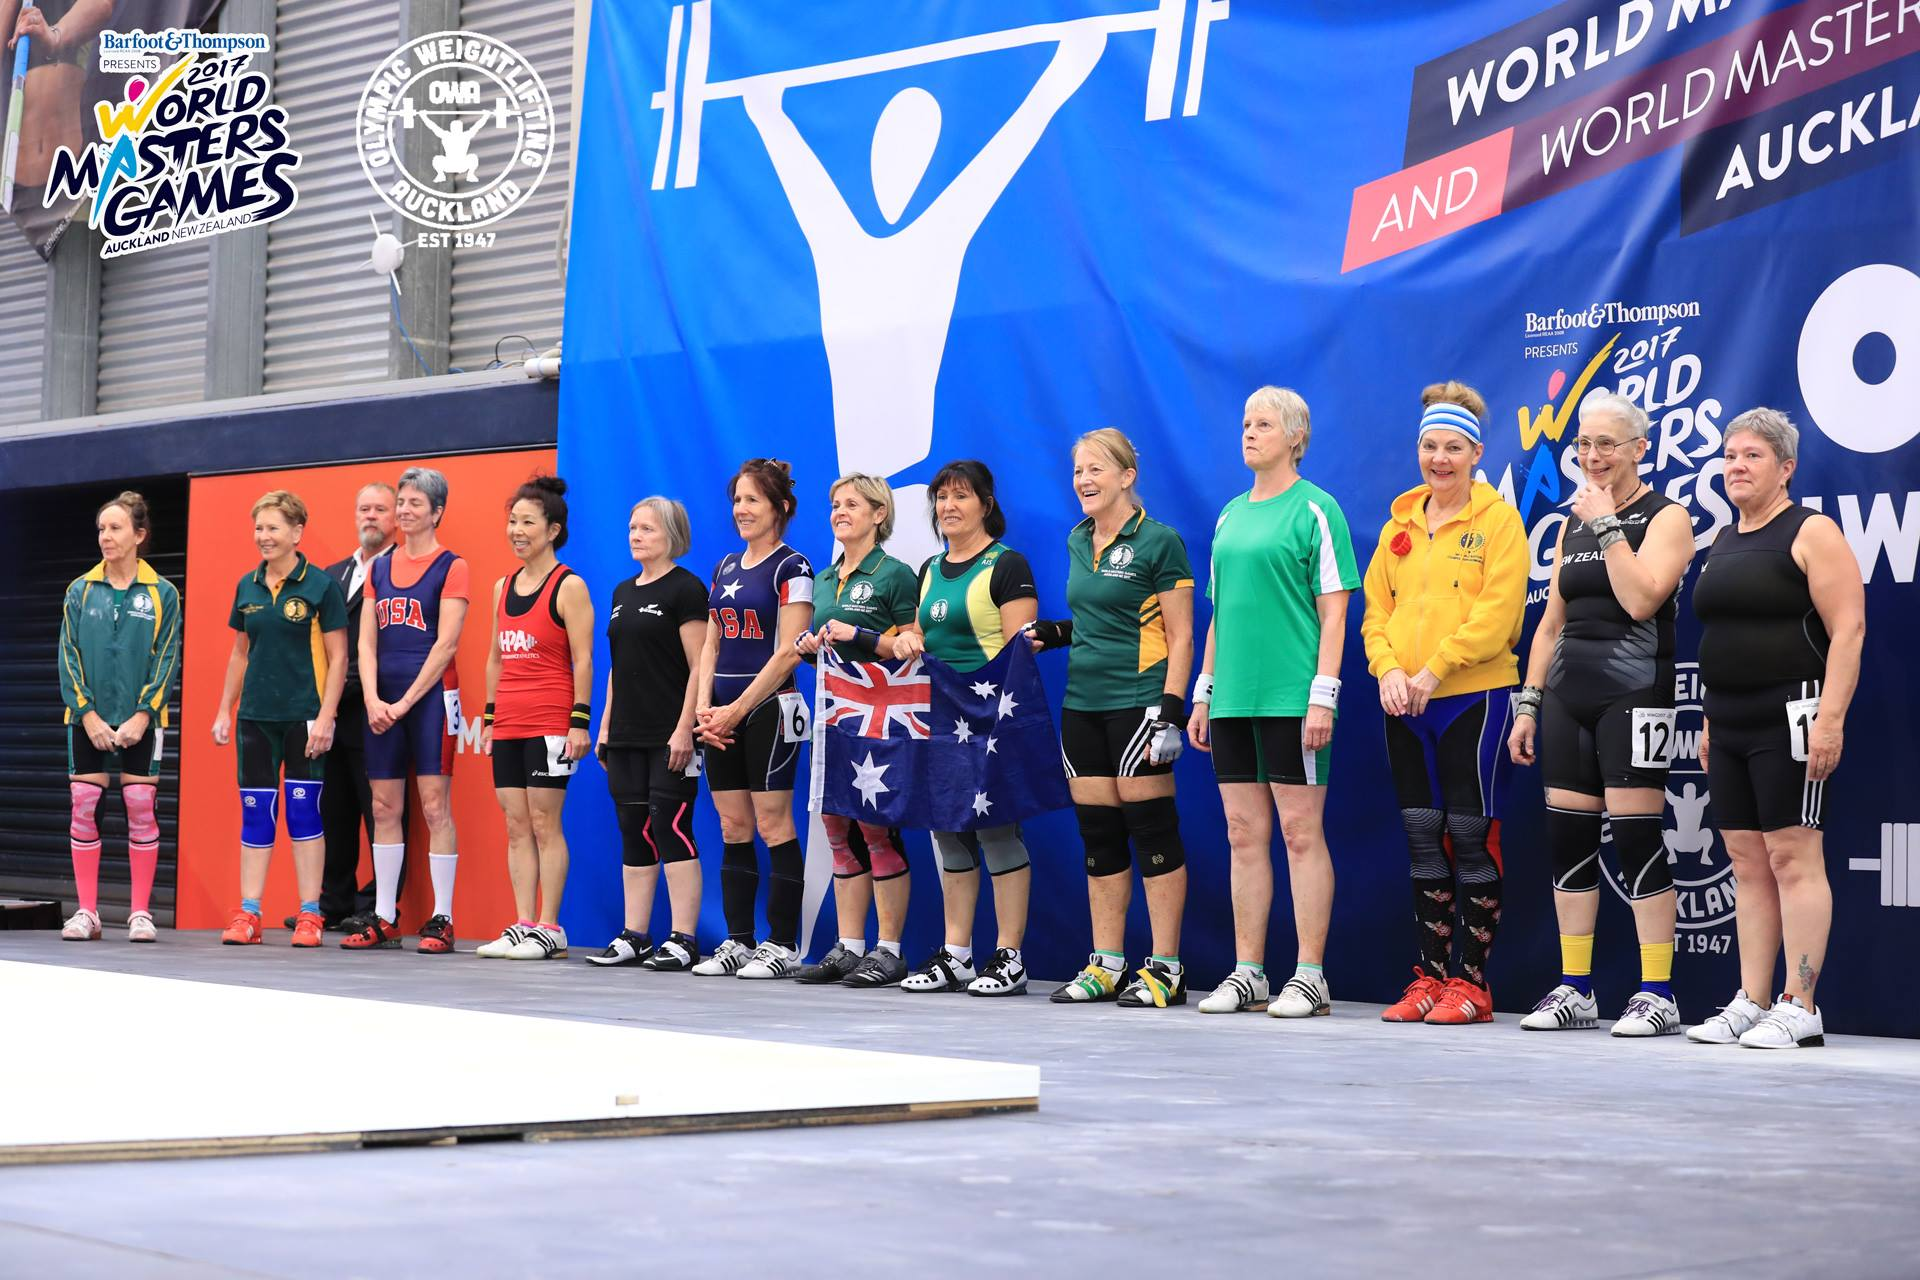 Australian Olympic Weightlifting Team at World Masters Games 2017